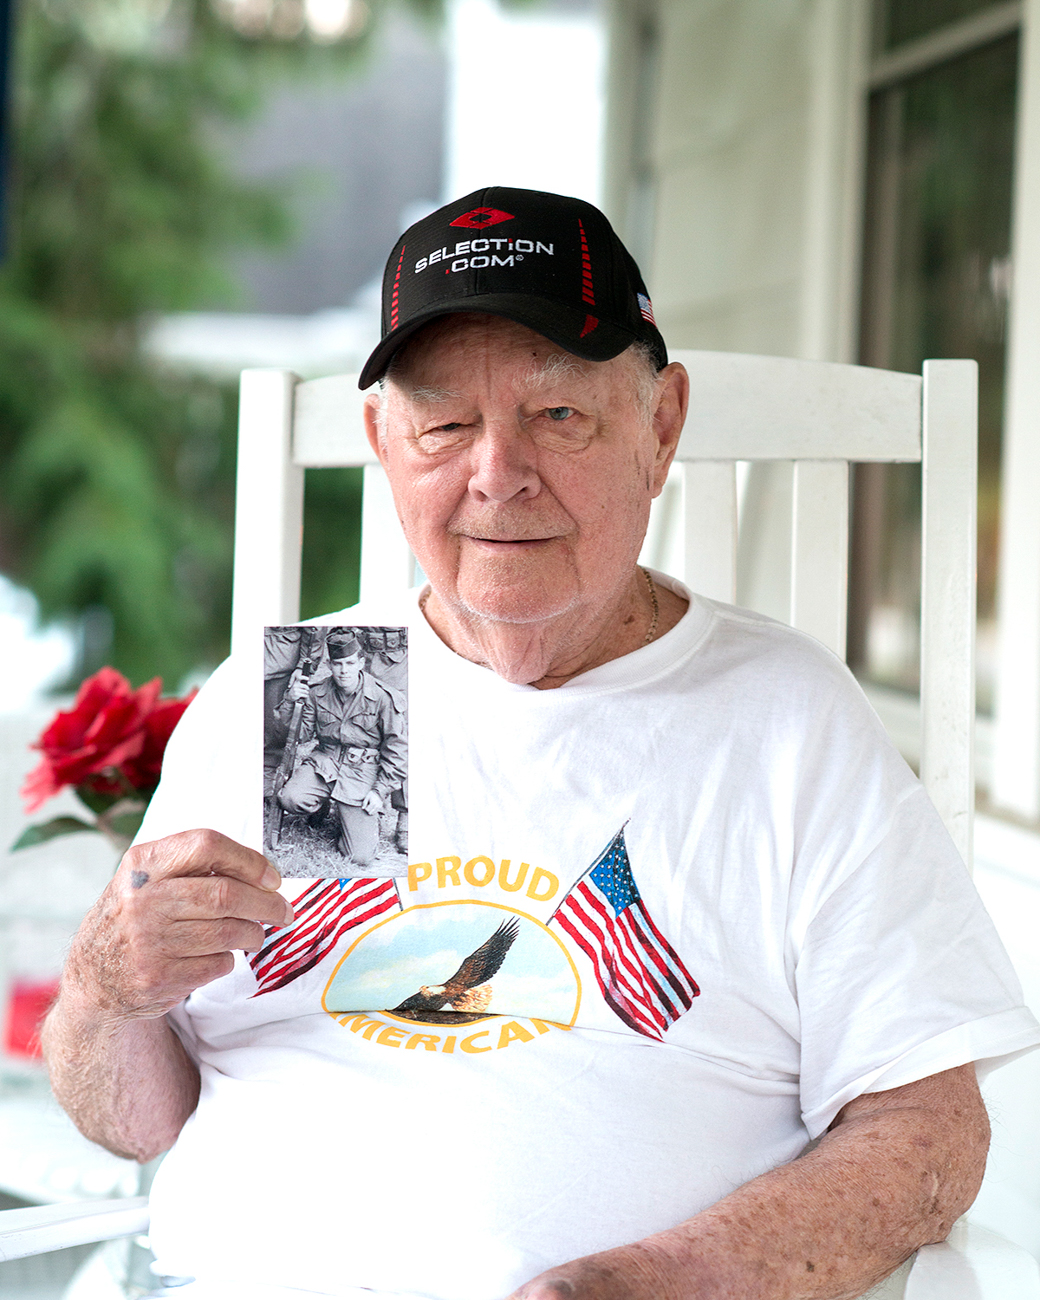 WILLIAM WILCH / He hit the beaches of Normandy on D-Day and miraculously dashed  through a German minefield without being hit by Nazi fire. / Read more of his story at facebook.com/theygaveitall. / Image: Patrick McCue // Published: 1.29.17